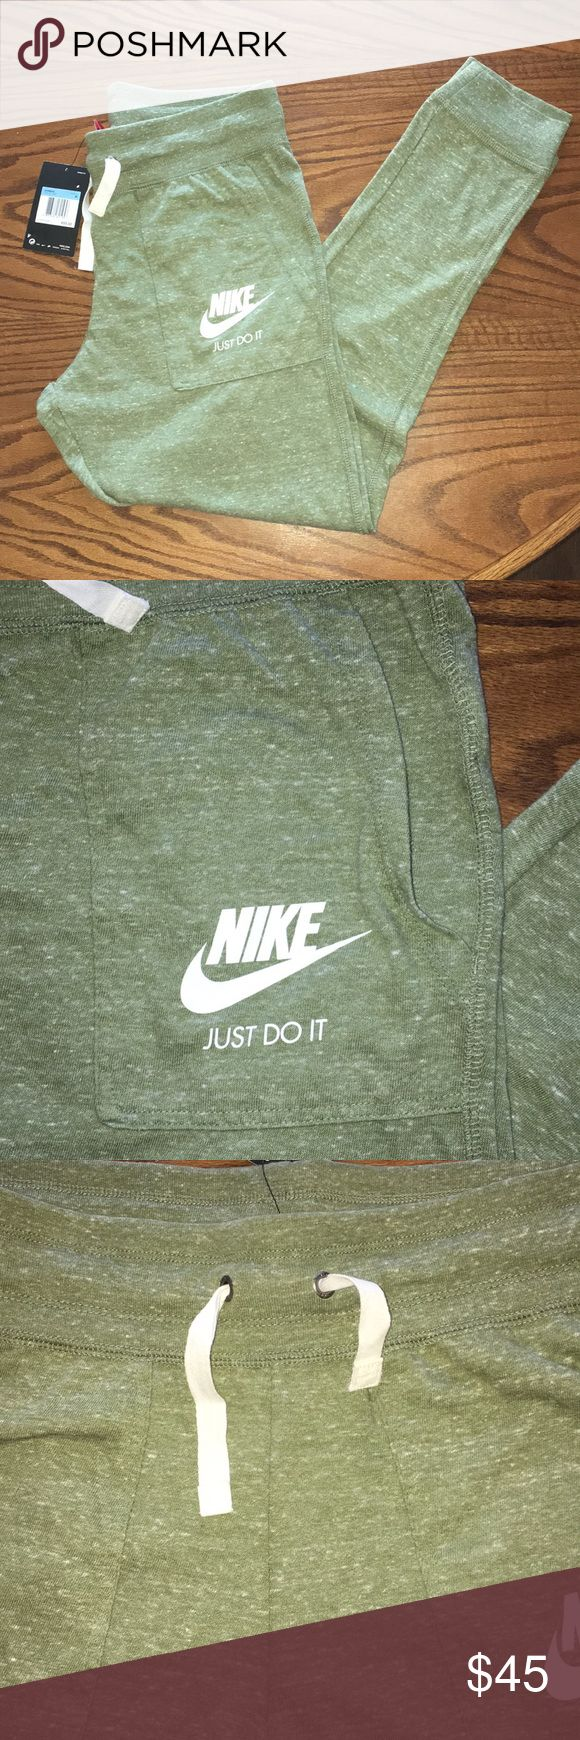 🆕Nike Sportswear Vintage Gym Pant Joggers The Nike Sportswear Gym Vintage Women's Pants are made with super-soft, cotton-blend fabric for all-day comfort and lasting wear.  Benefits Lightweight, cotton-blend fabric feels soft and comfortable Rib waistban http://feedproxy.google.com/fashionshoes1